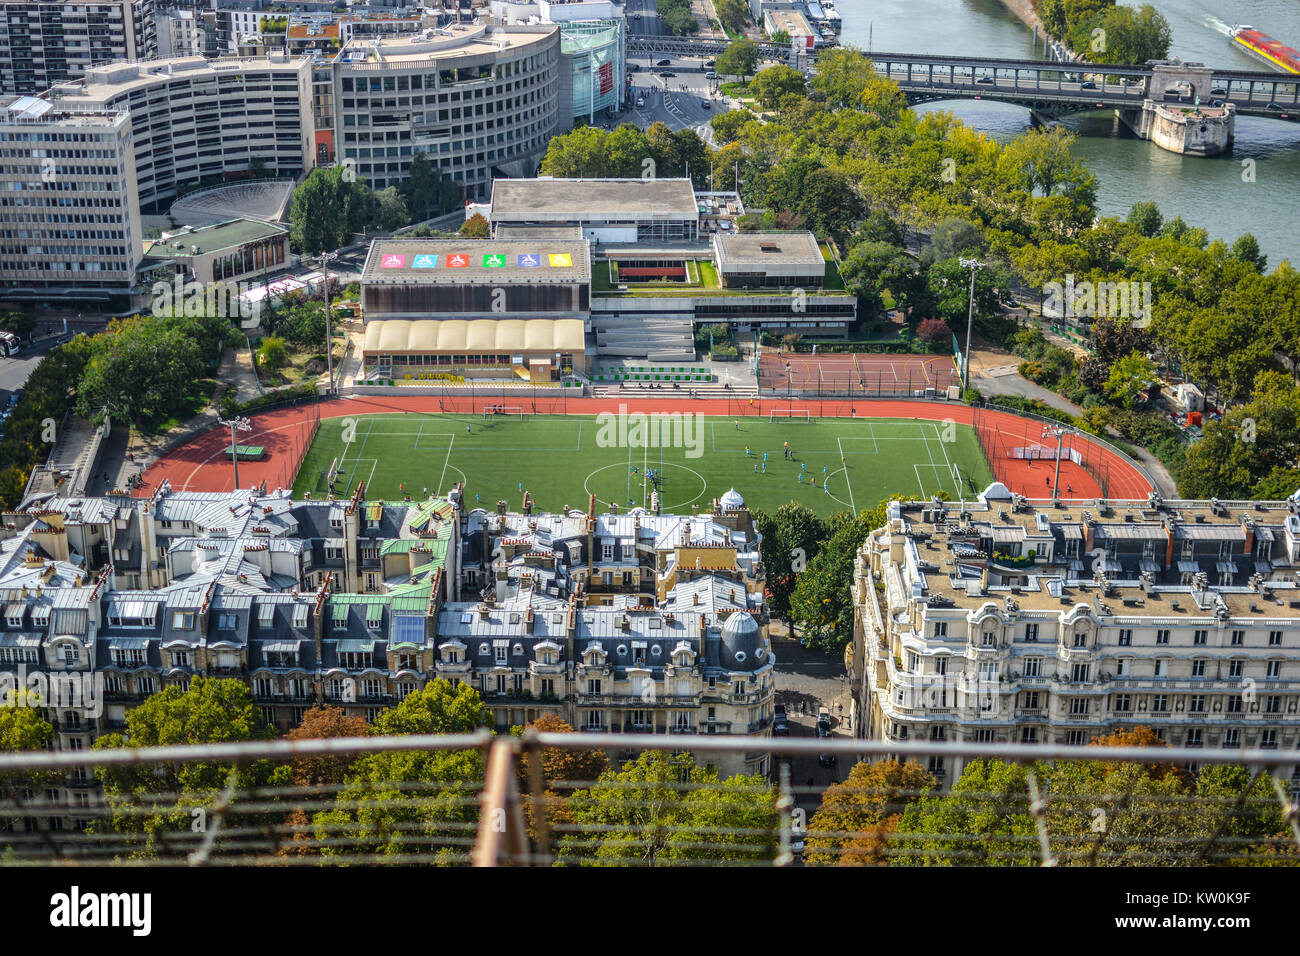 View of a school sports field from the first platform of the Eiffel Tower in Paris France - Stock Image